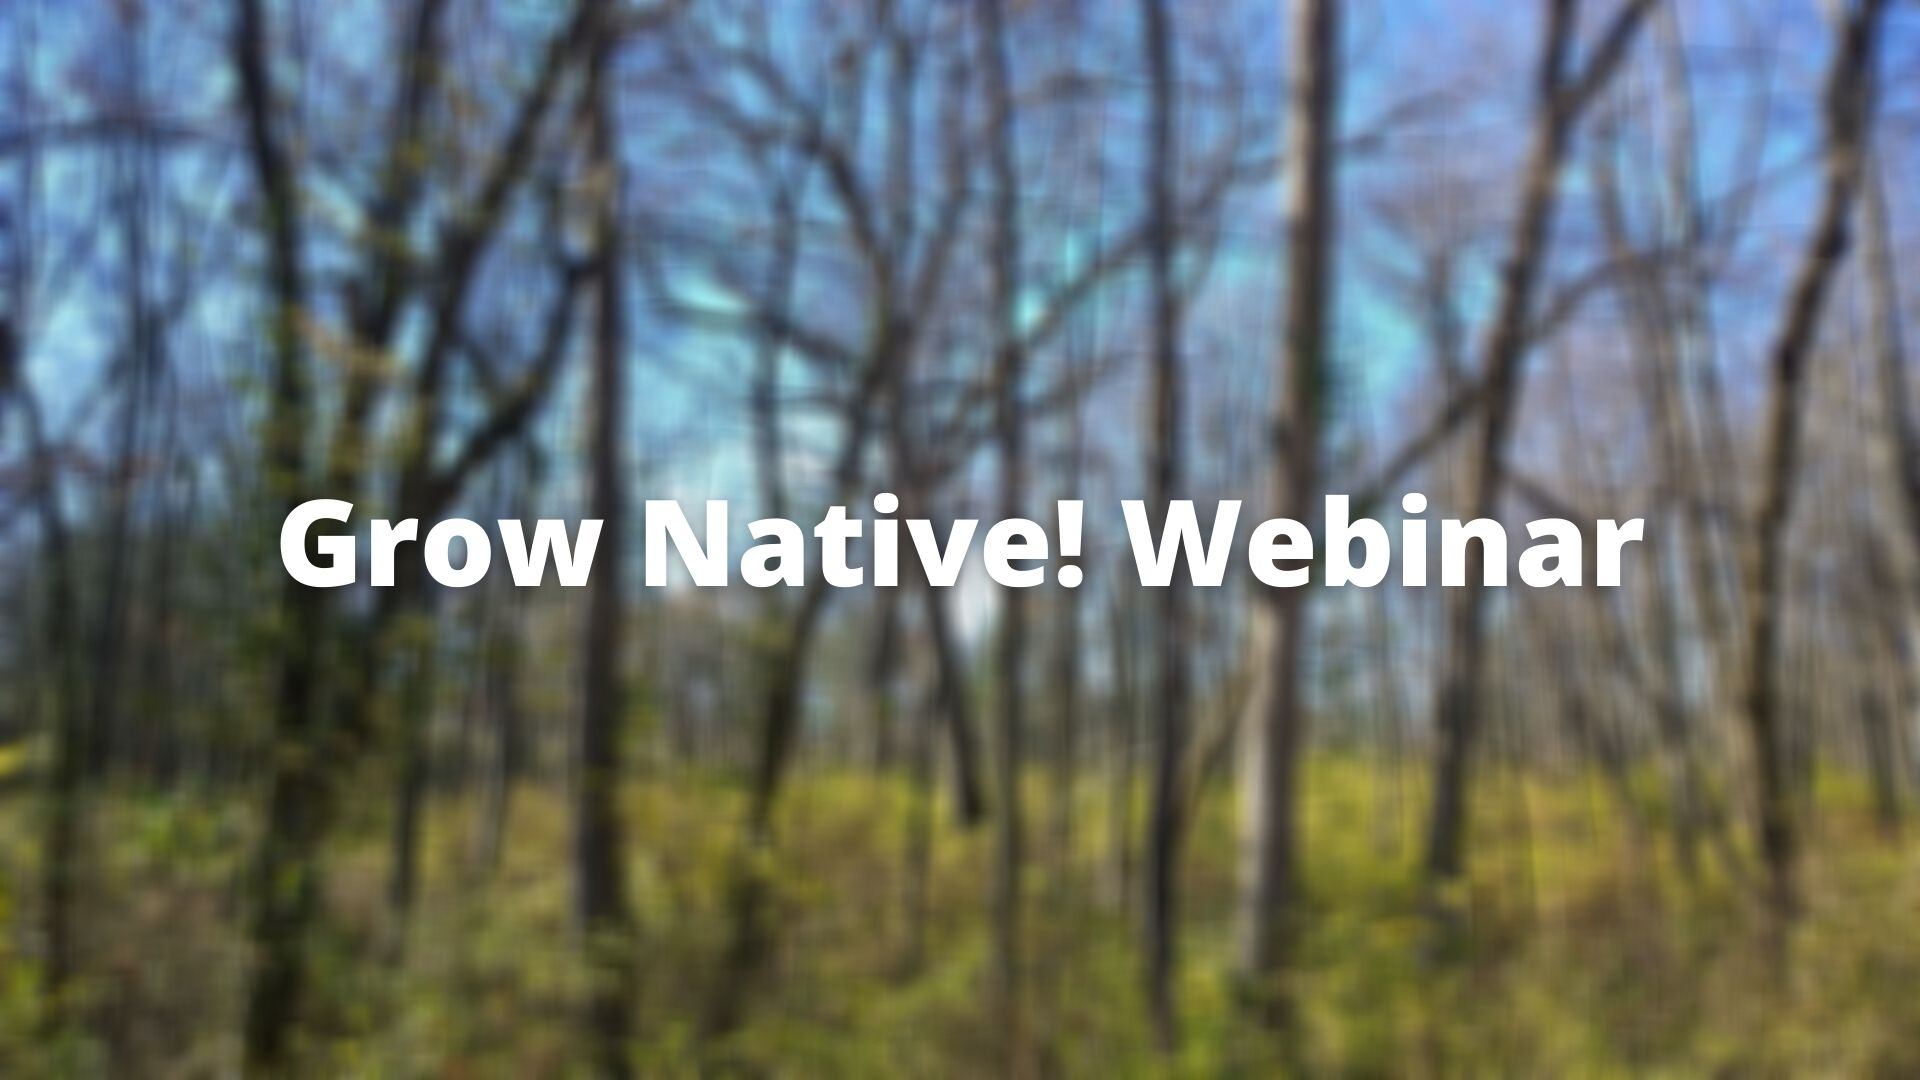 Grow Native Webinar image against background of trees